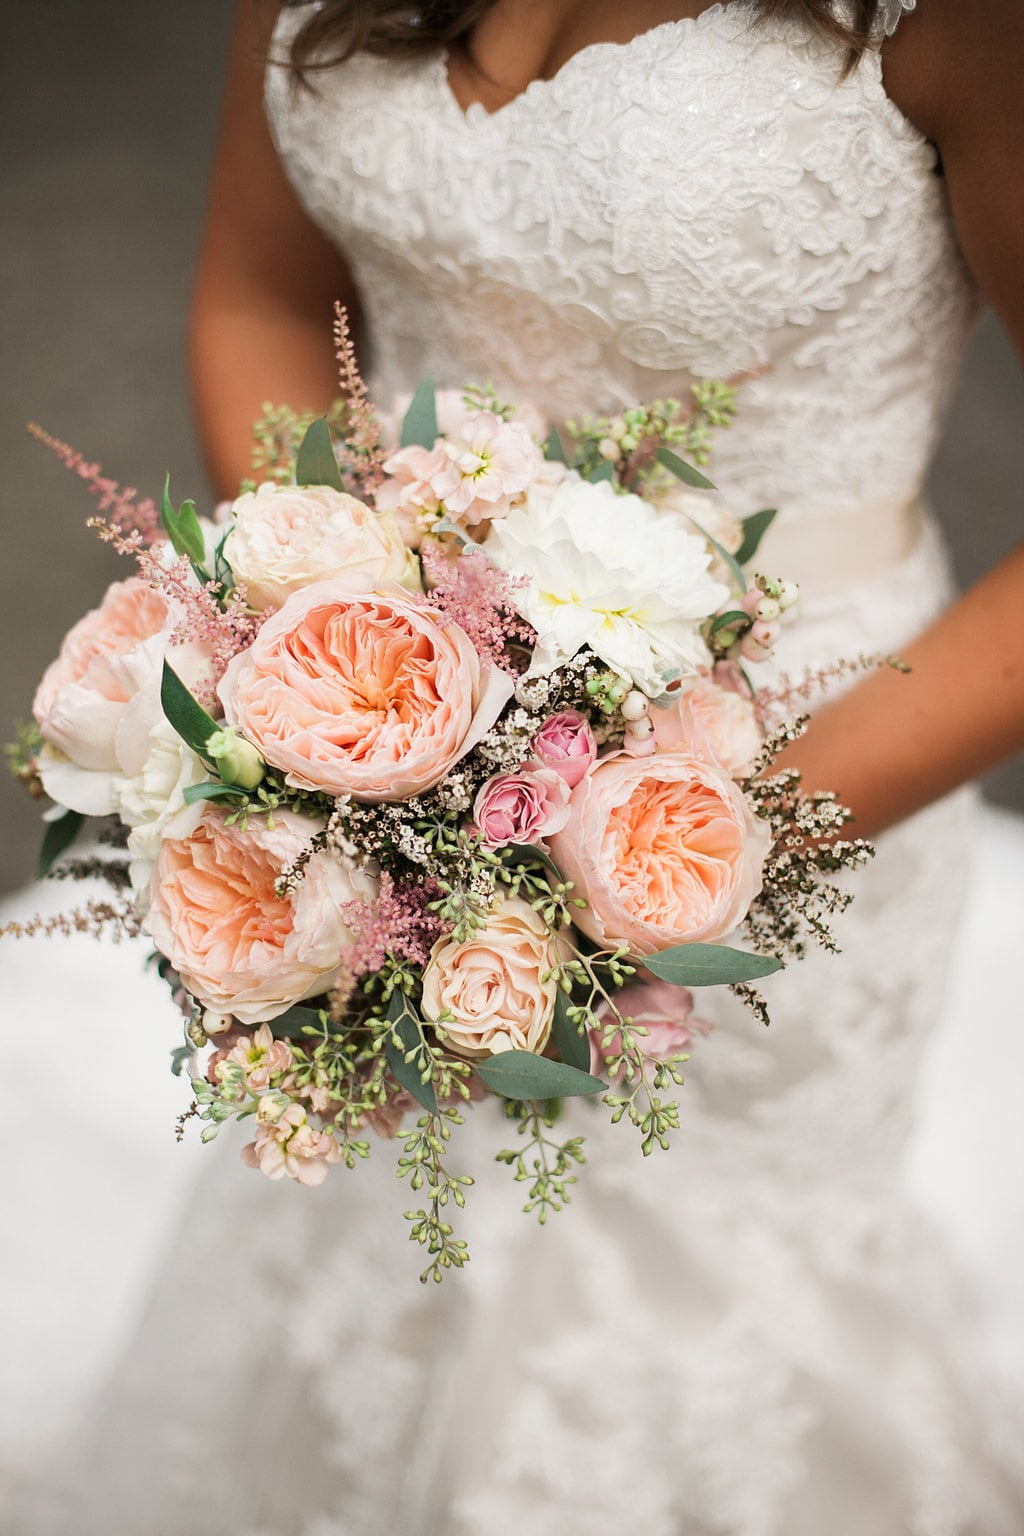 David Austin Juliet Garden Rose Bridal Bouquet